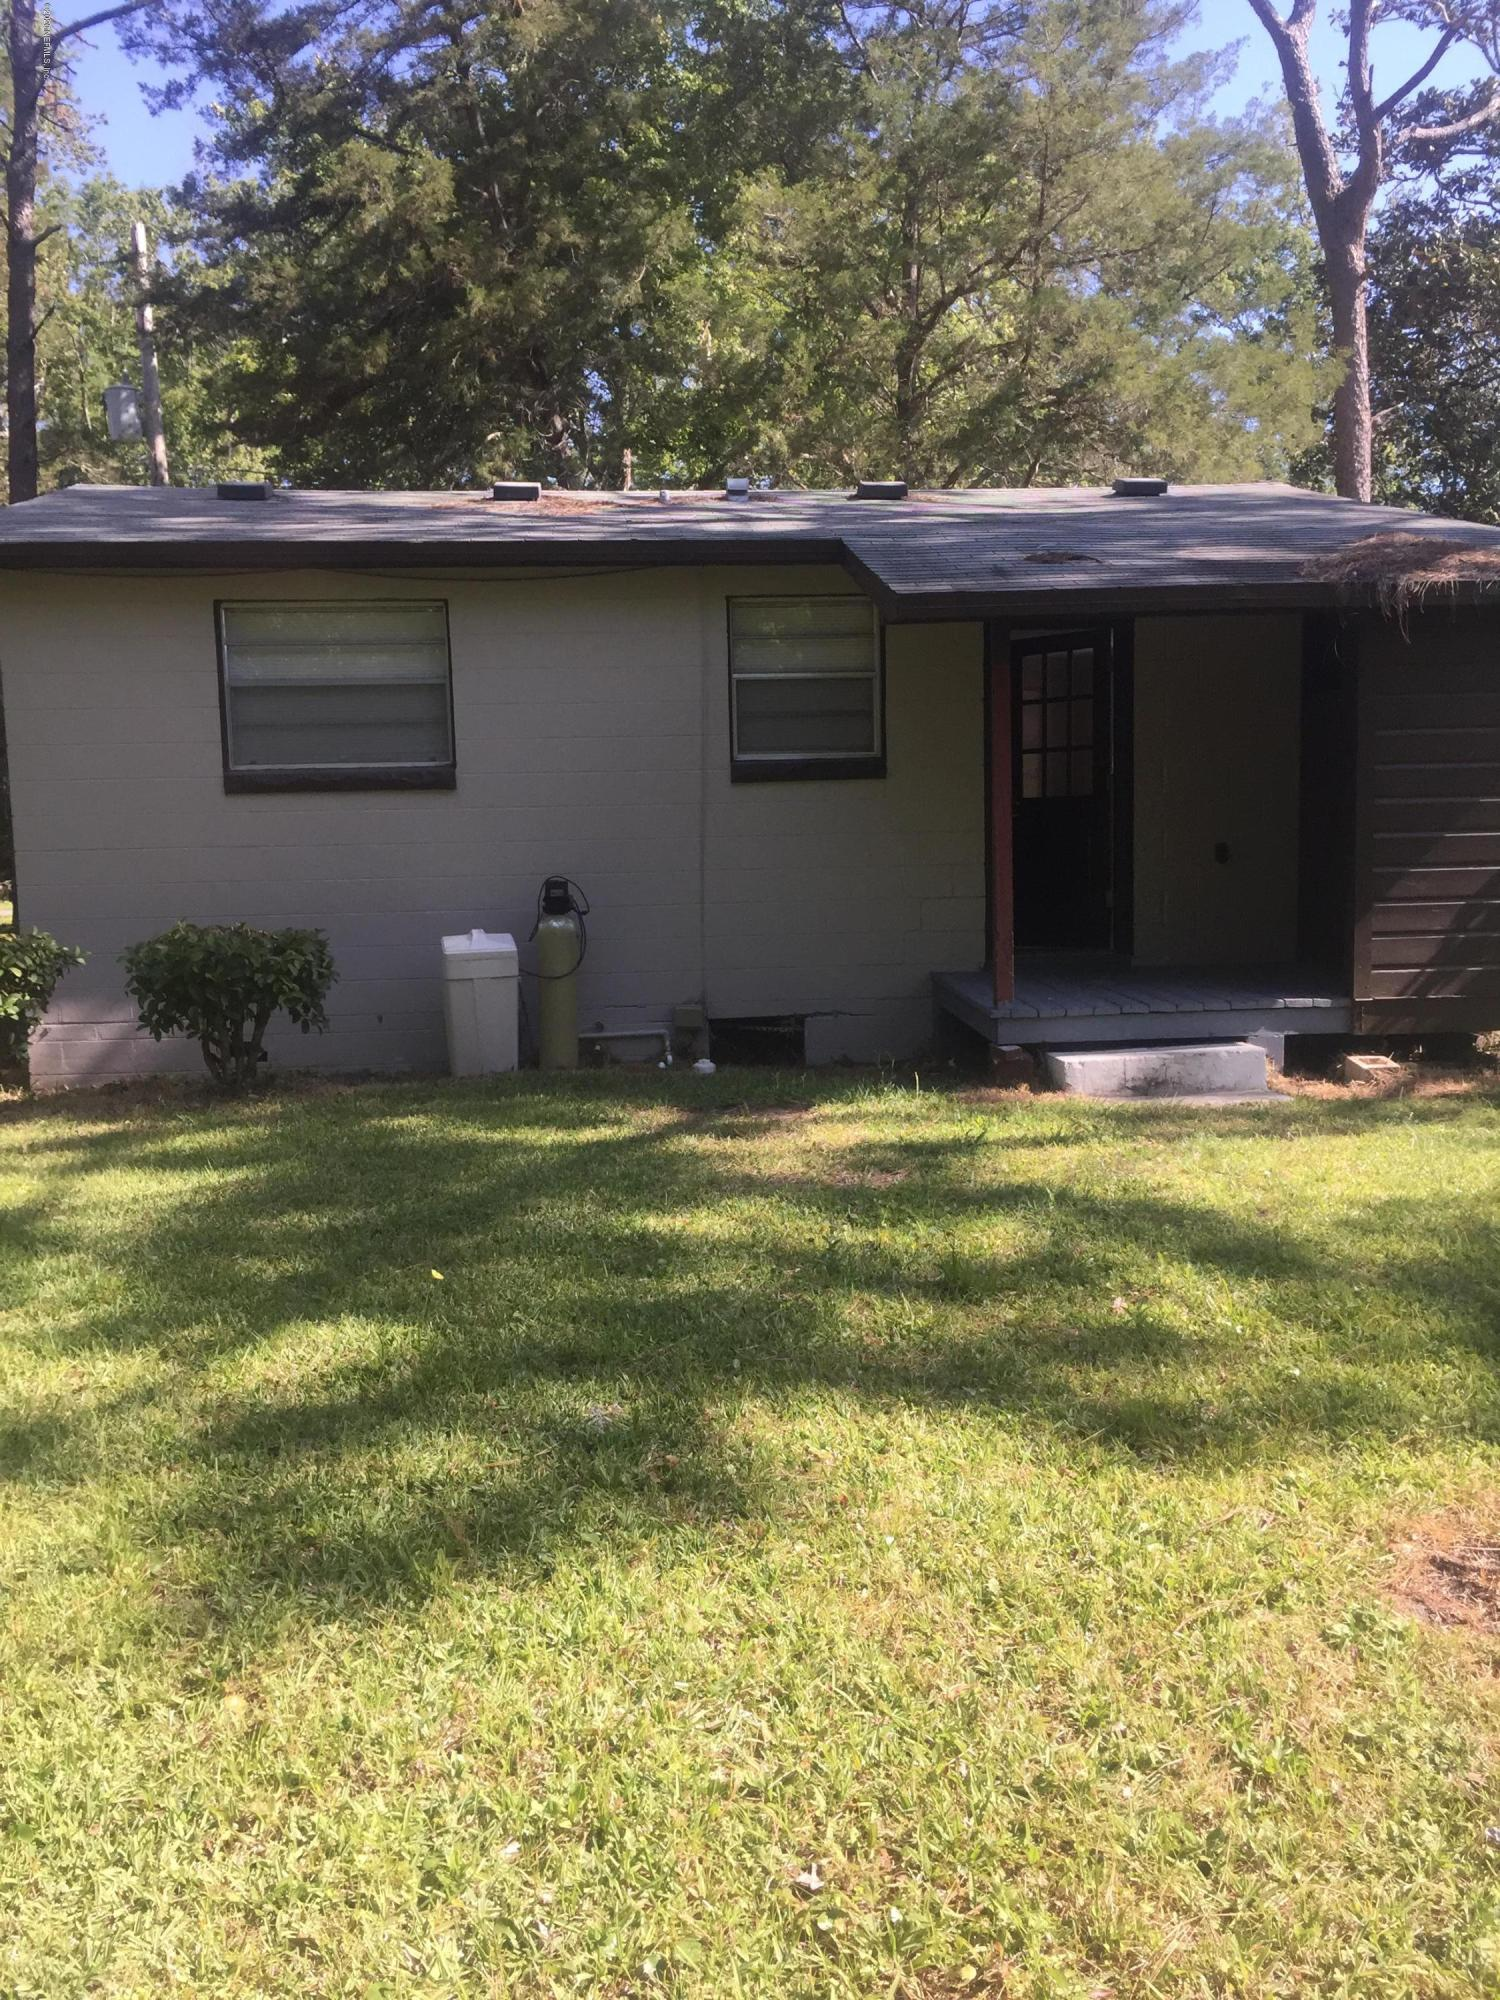 11120 CHAFFEE, JACKSONVILLE, FLORIDA 32221, 2 Bedrooms Bedrooms, ,1 BathroomBathrooms,Rental,For Rent,CHAFFEE,1058588